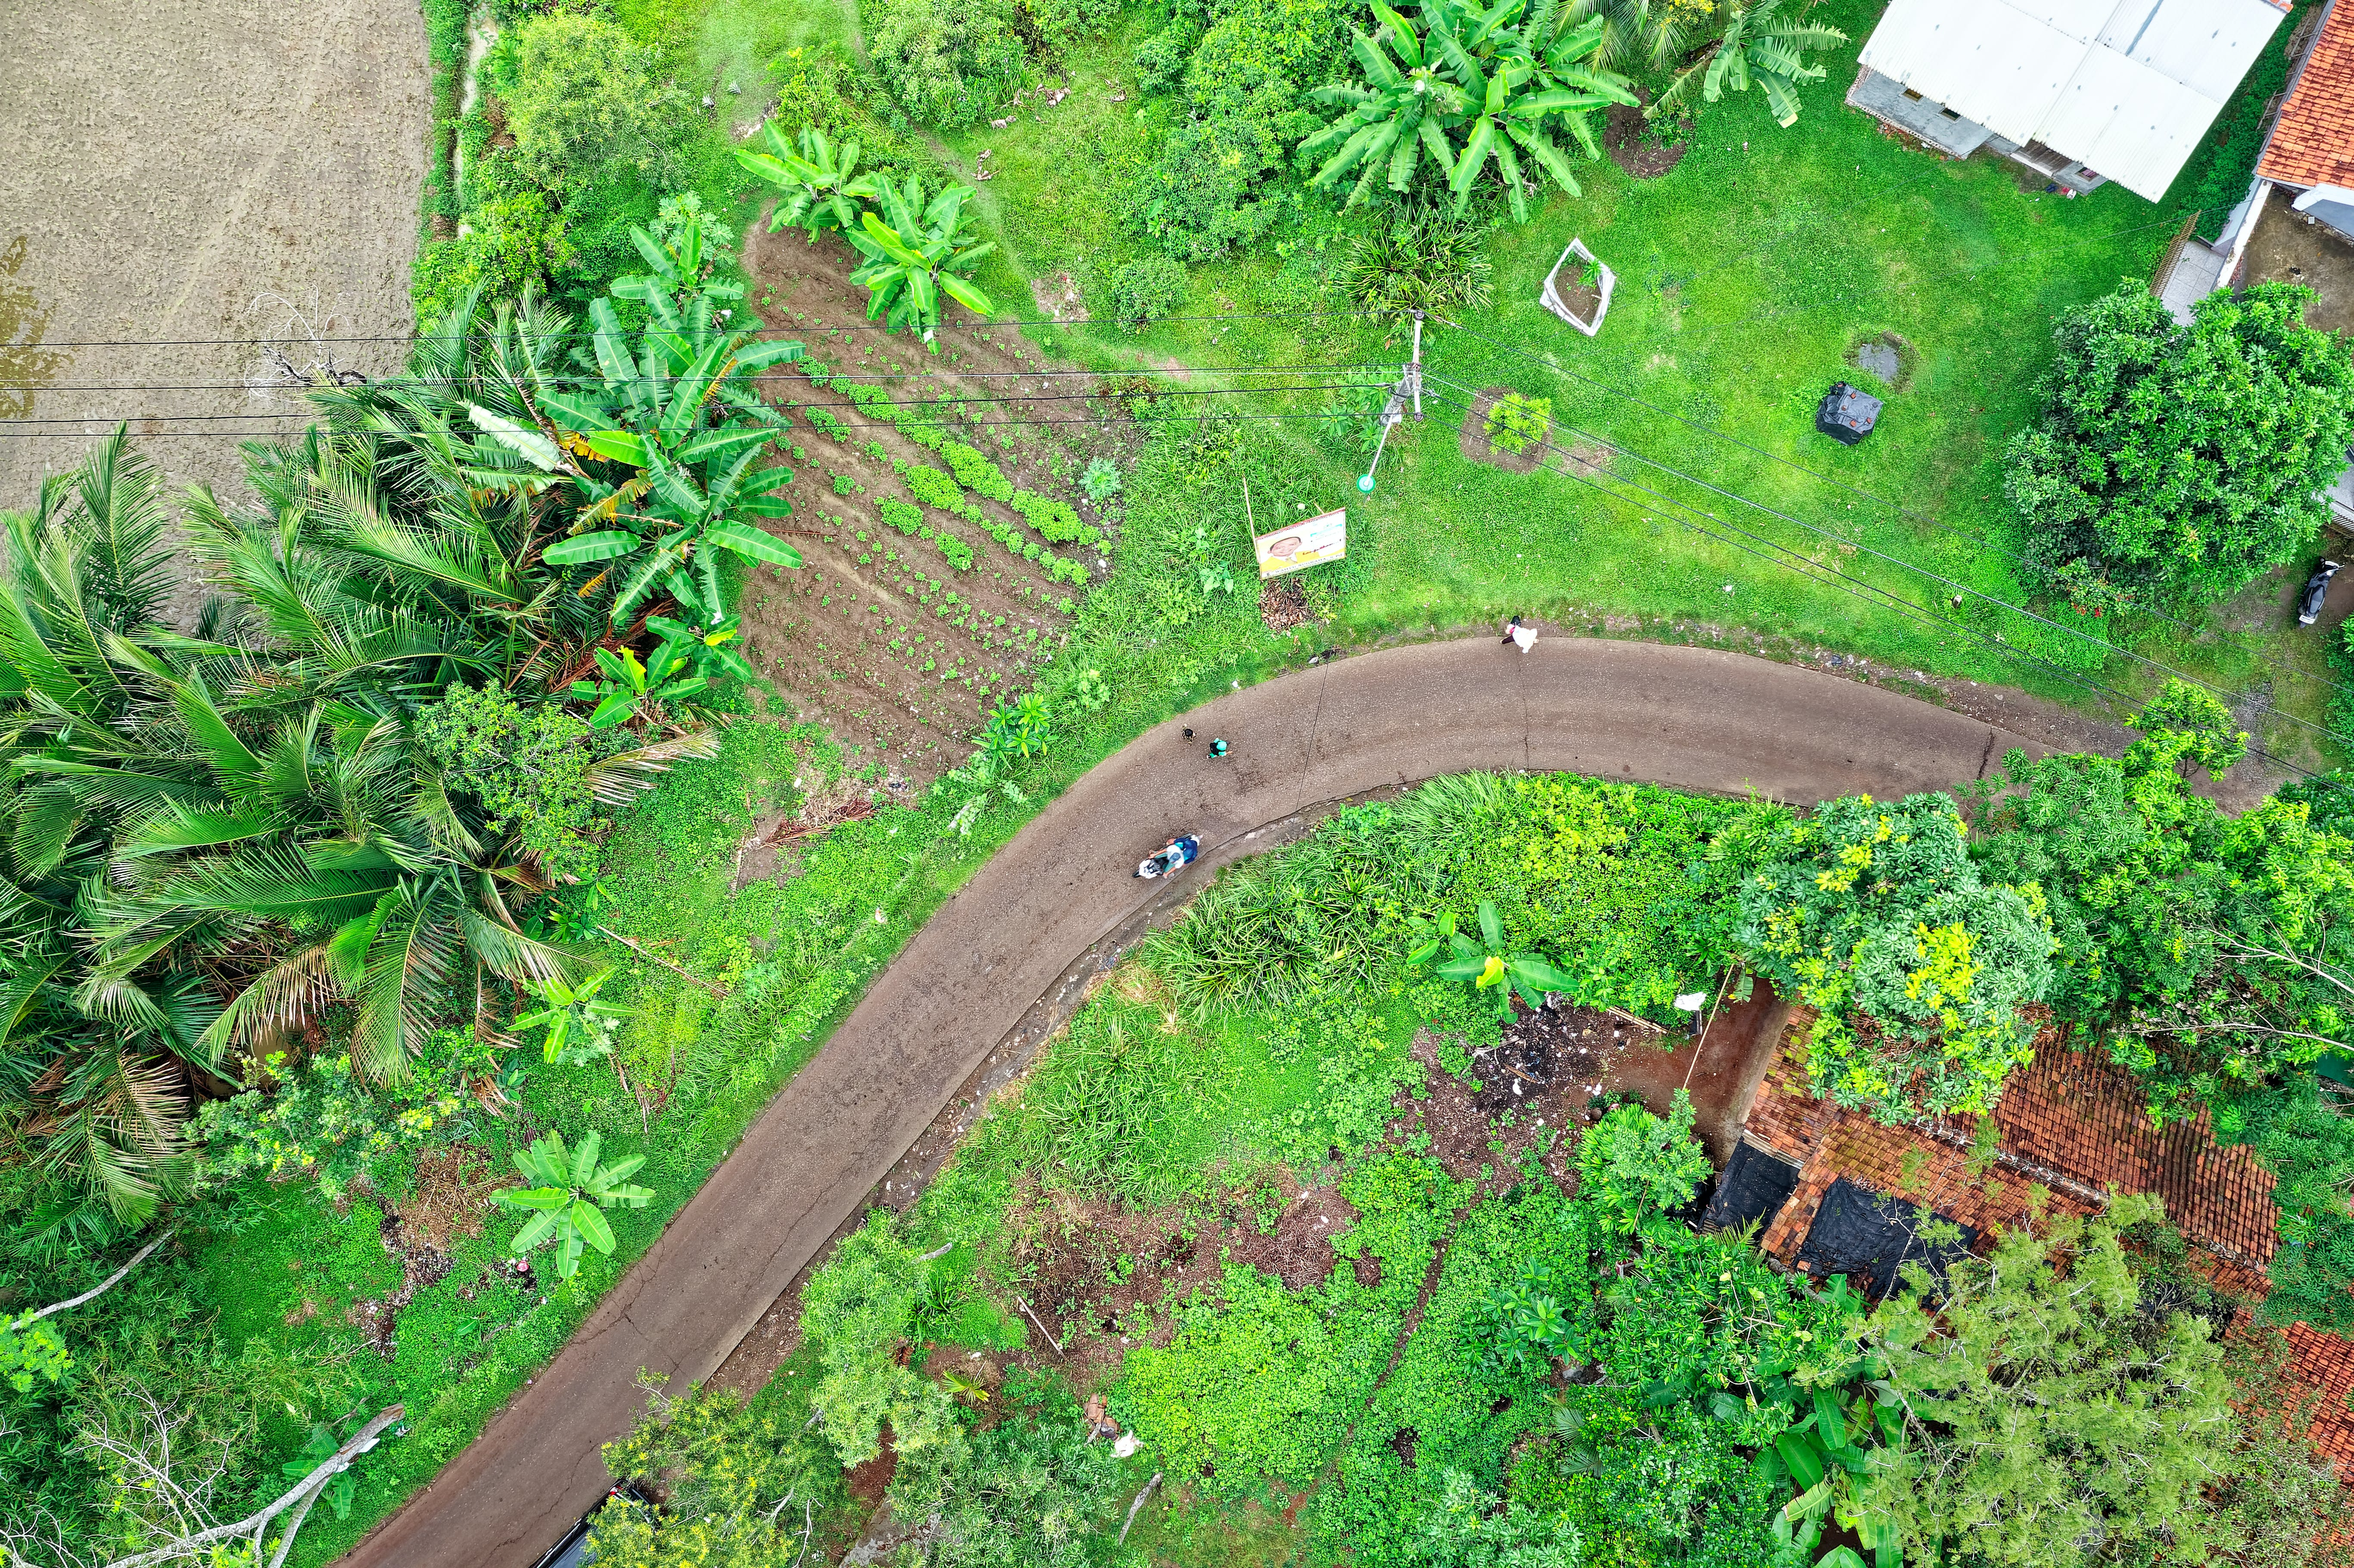 Top View Photo of Road